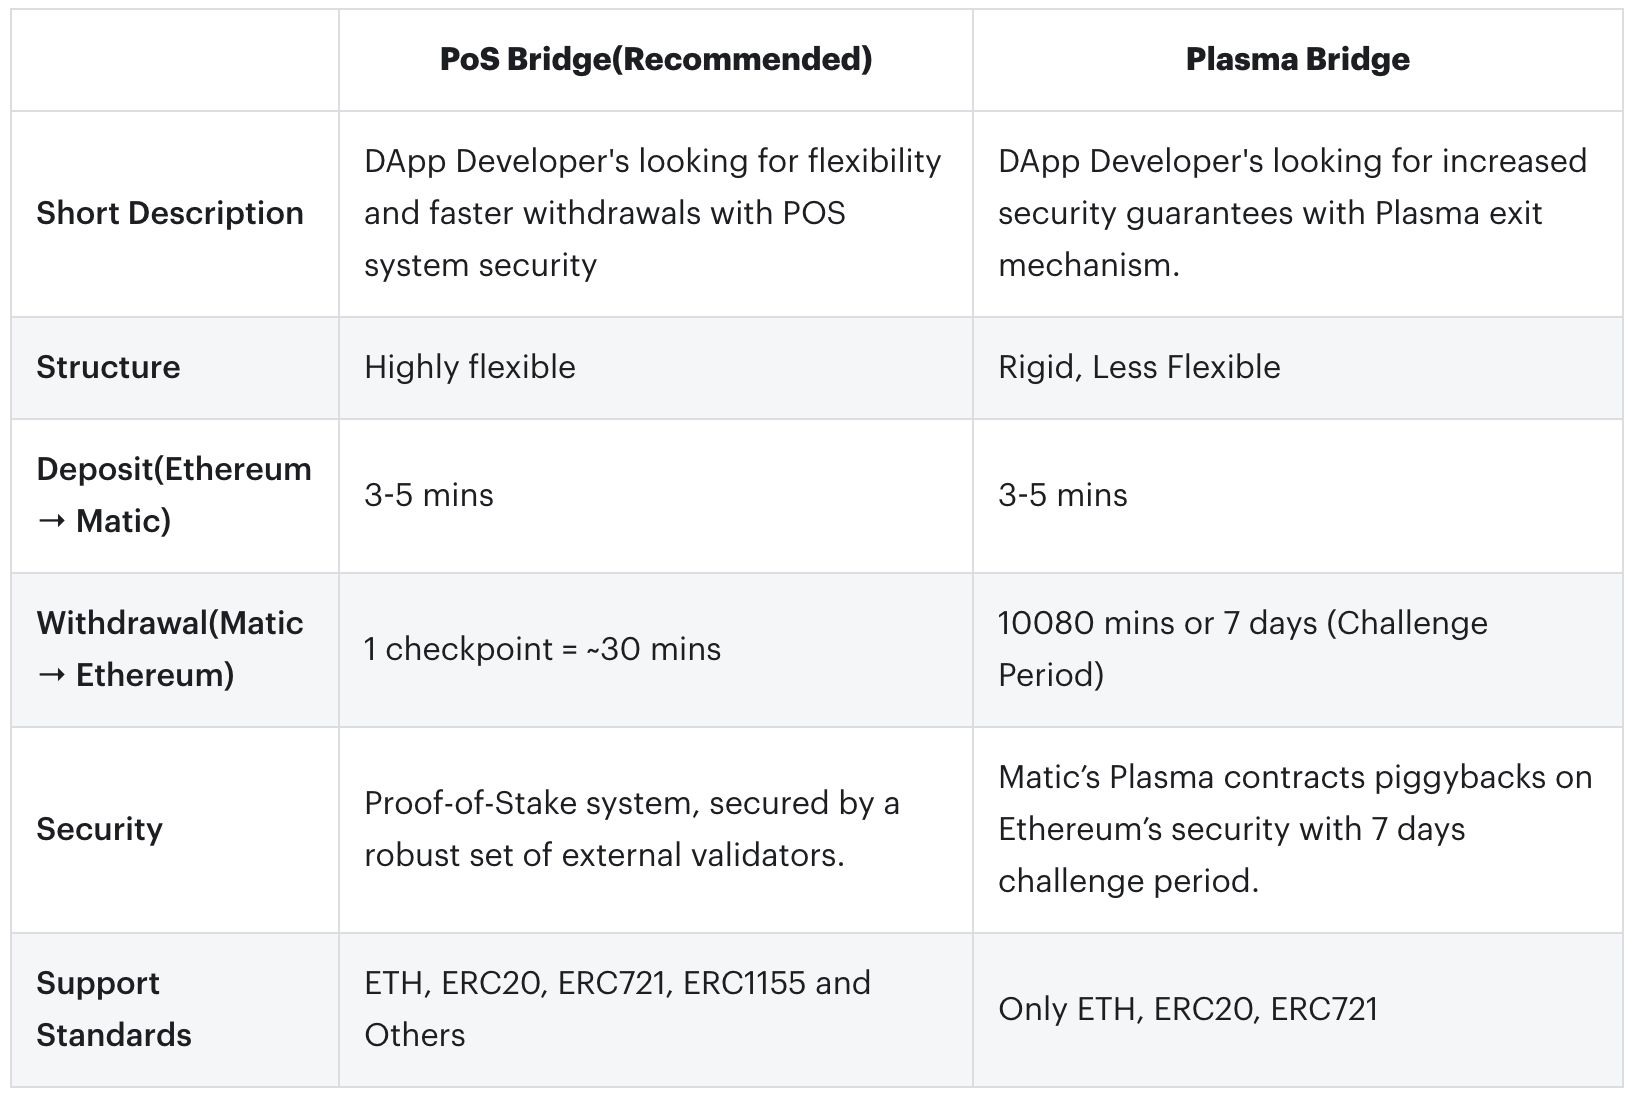 What's the difference between PoS and Plasma bridges?